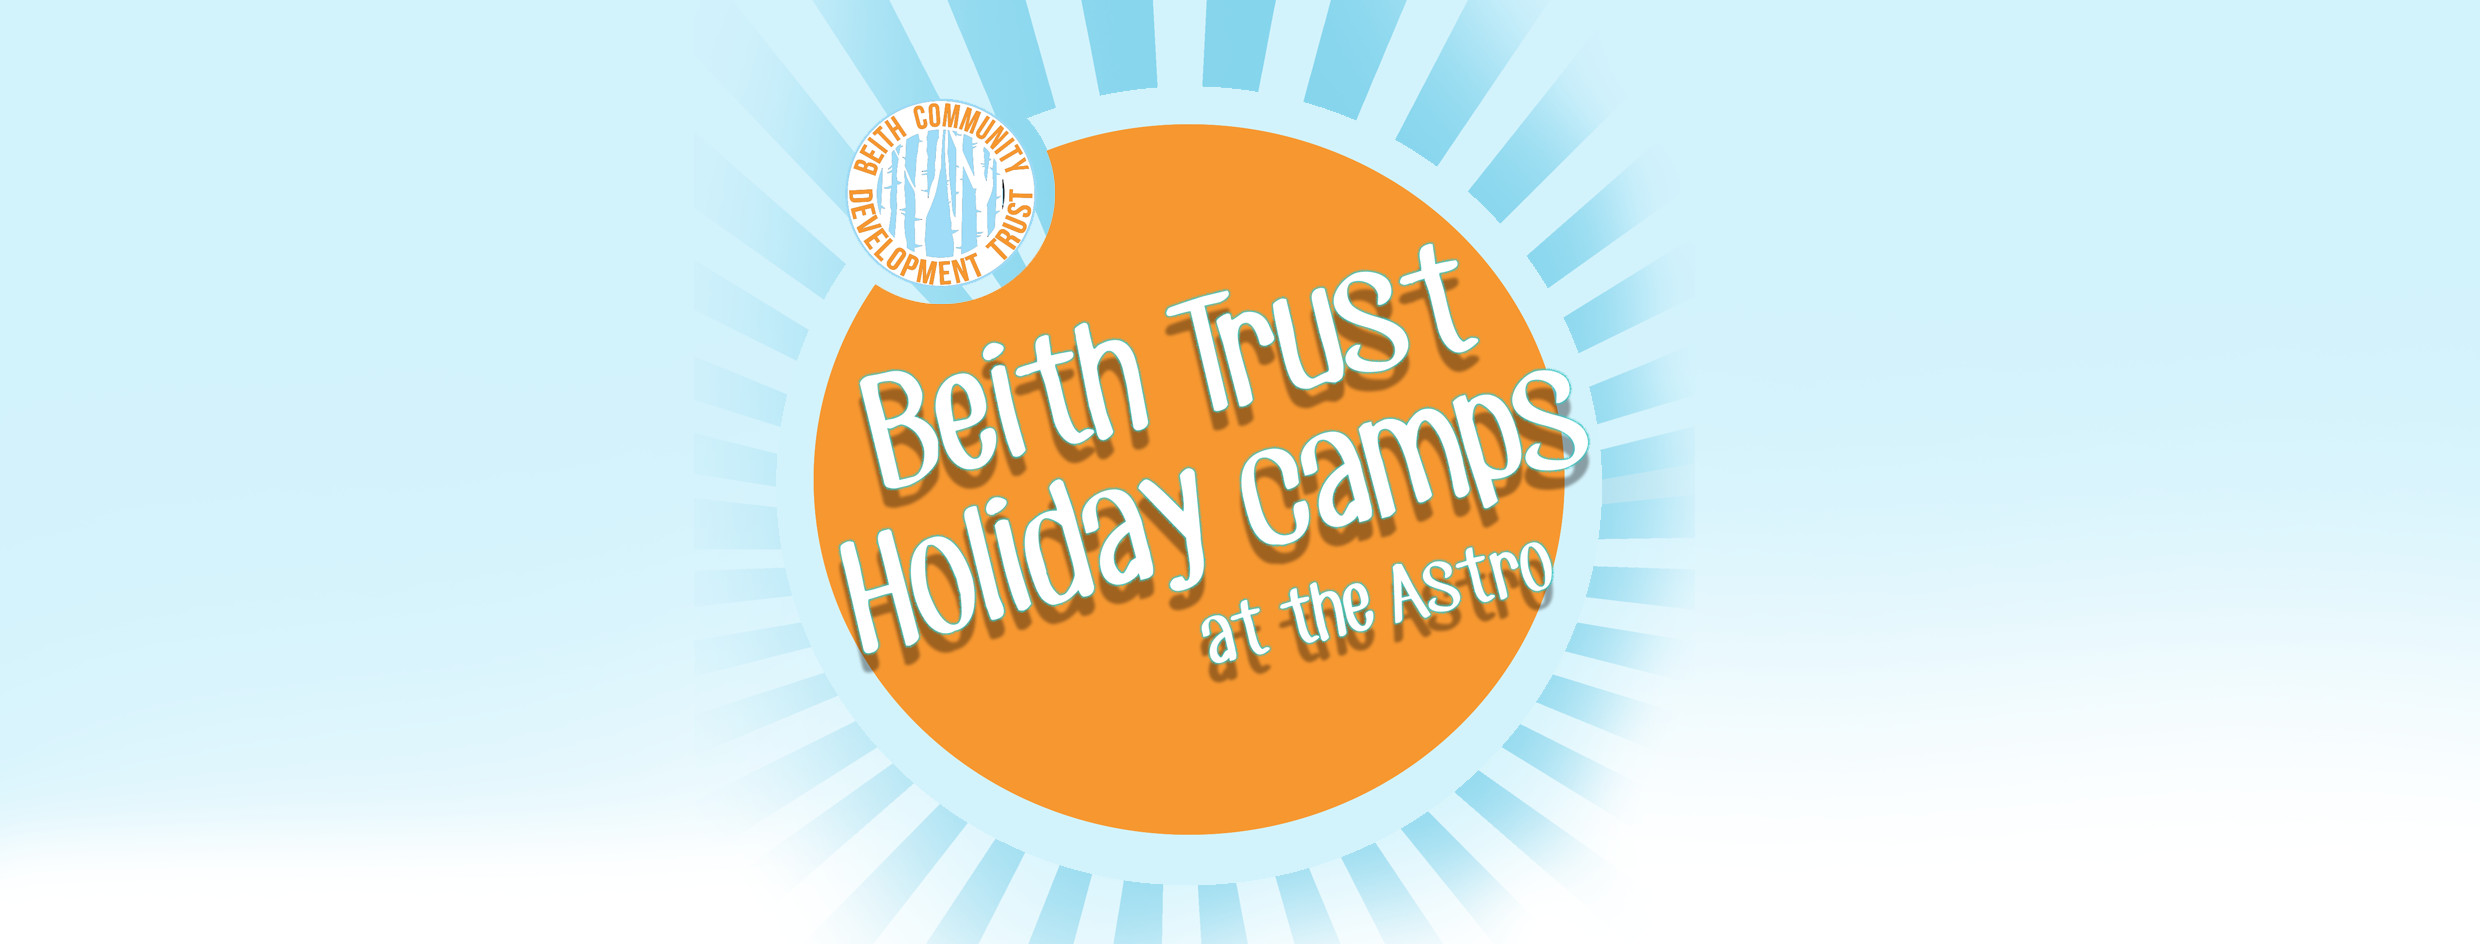 Beith Trust Holiday Camps